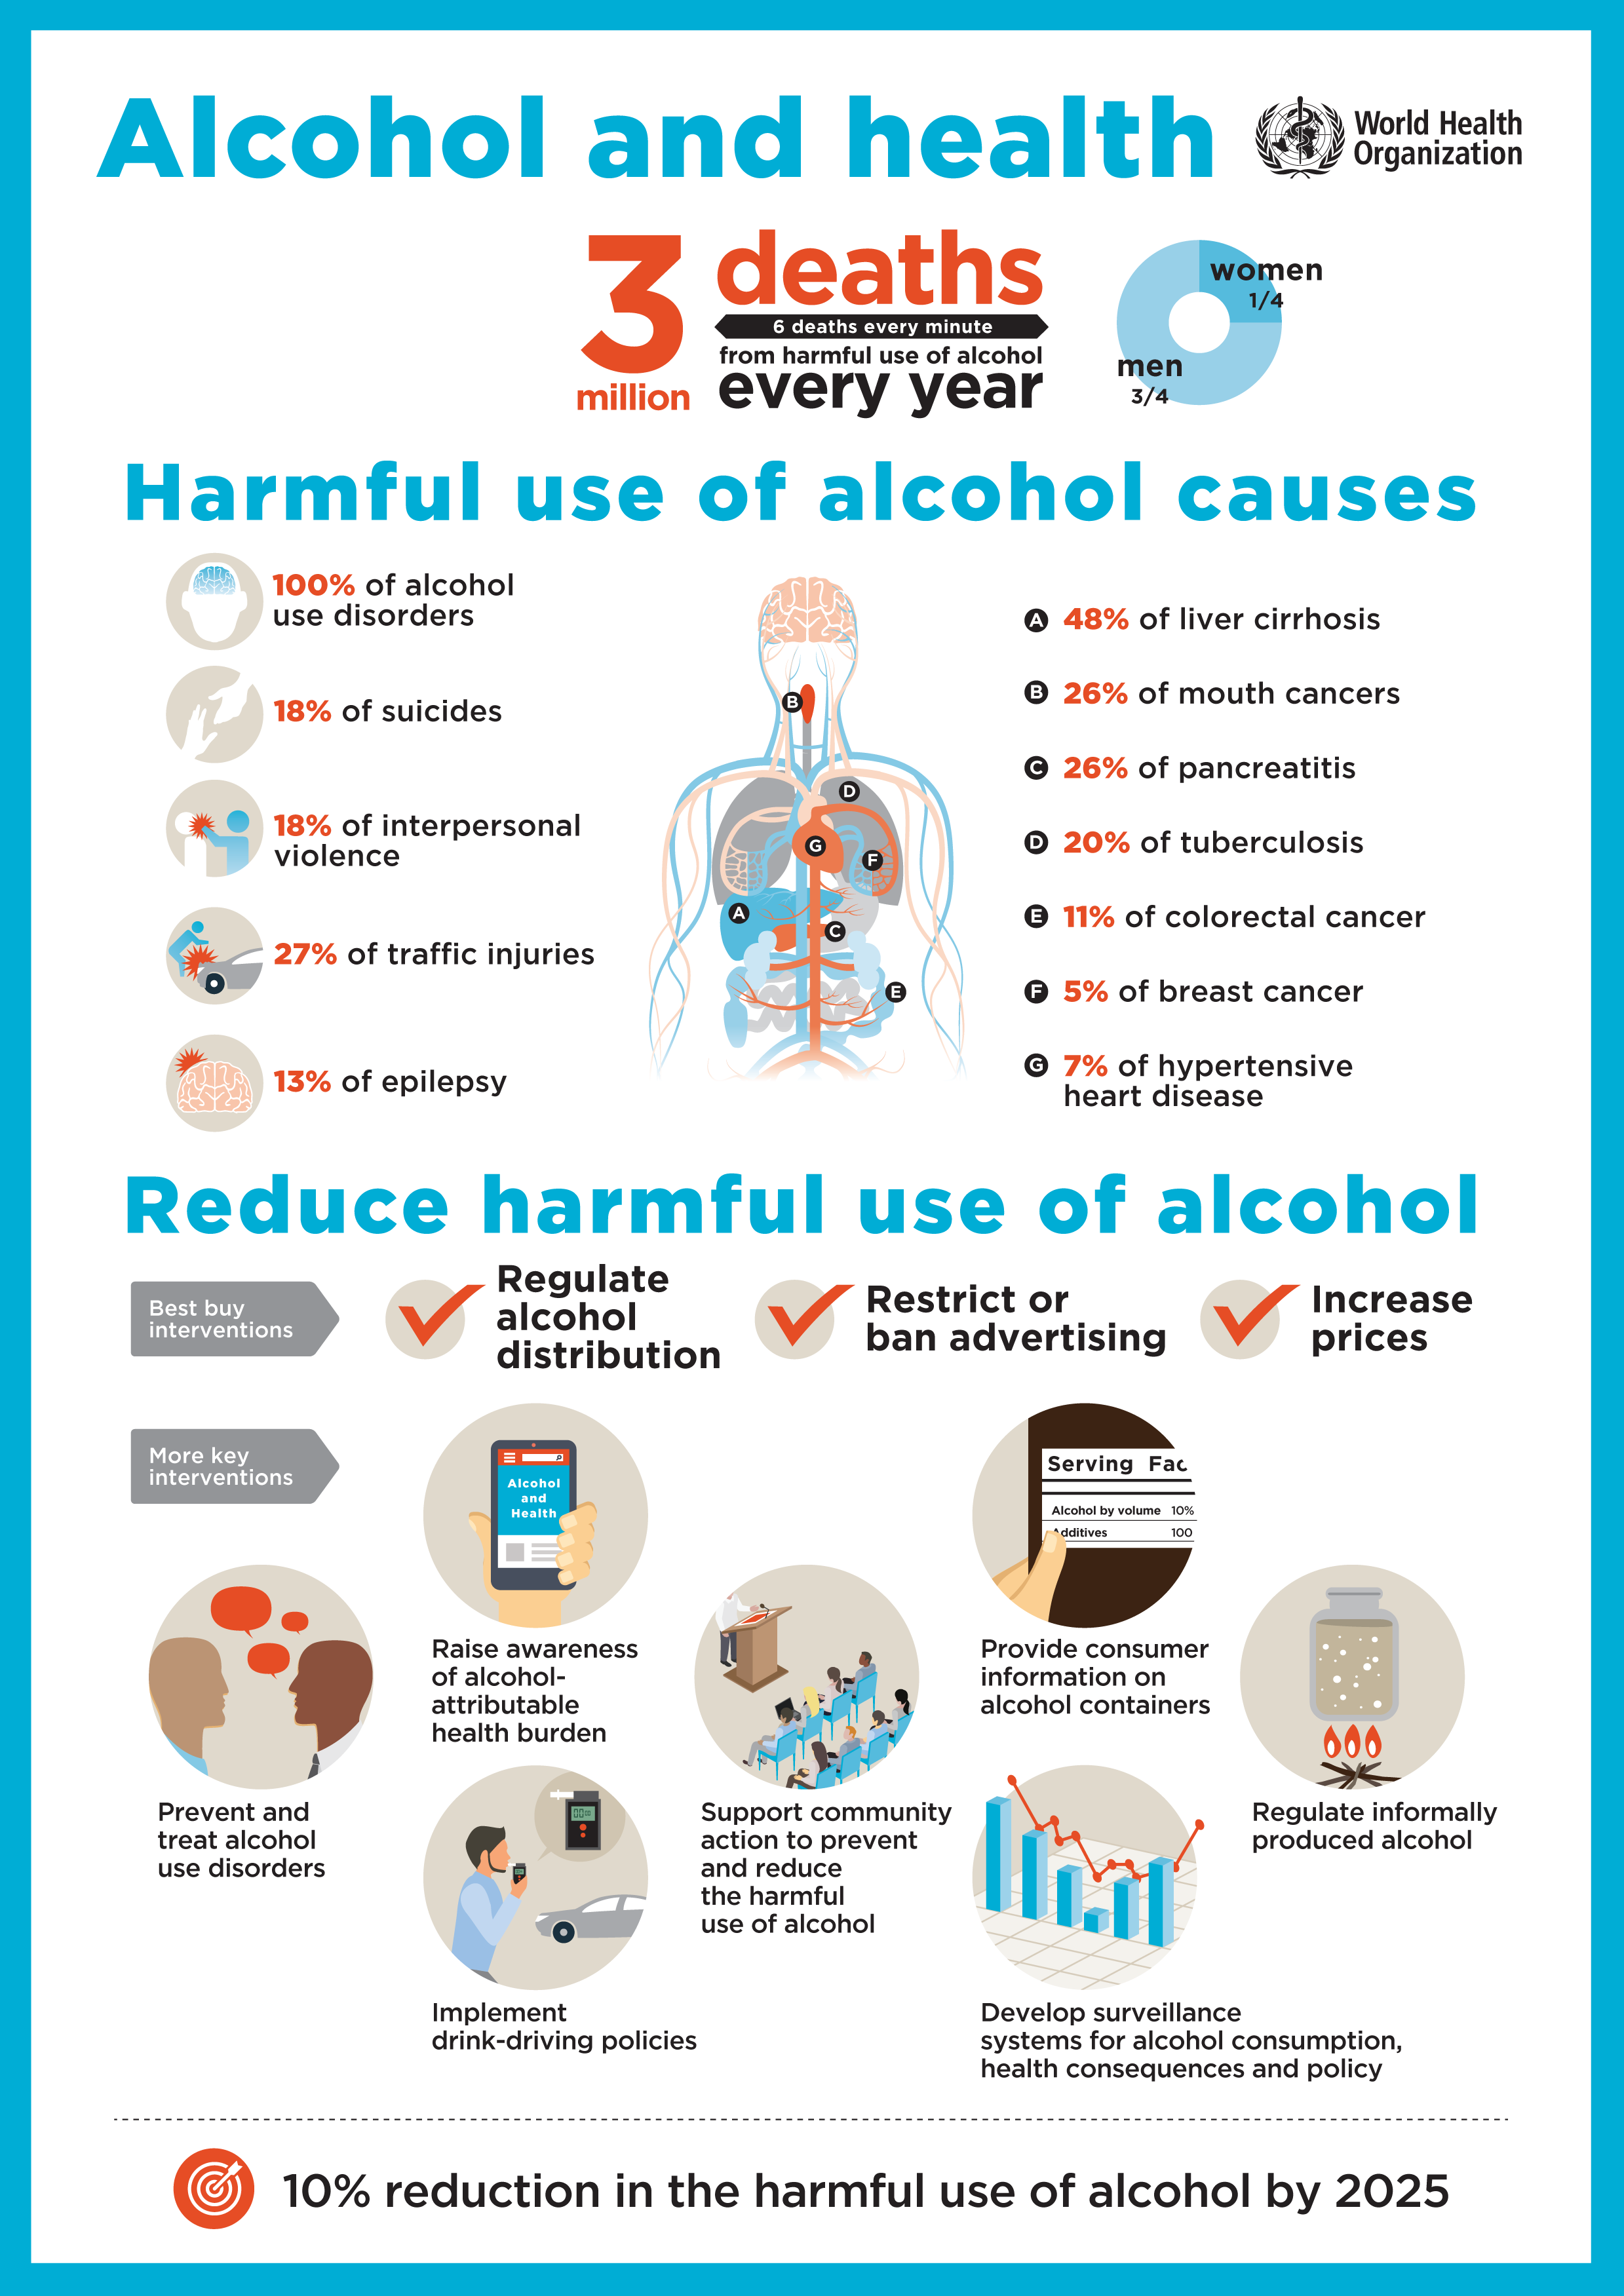 An infographic from the World Health Organization about the effects of alcohol on health worldwide.